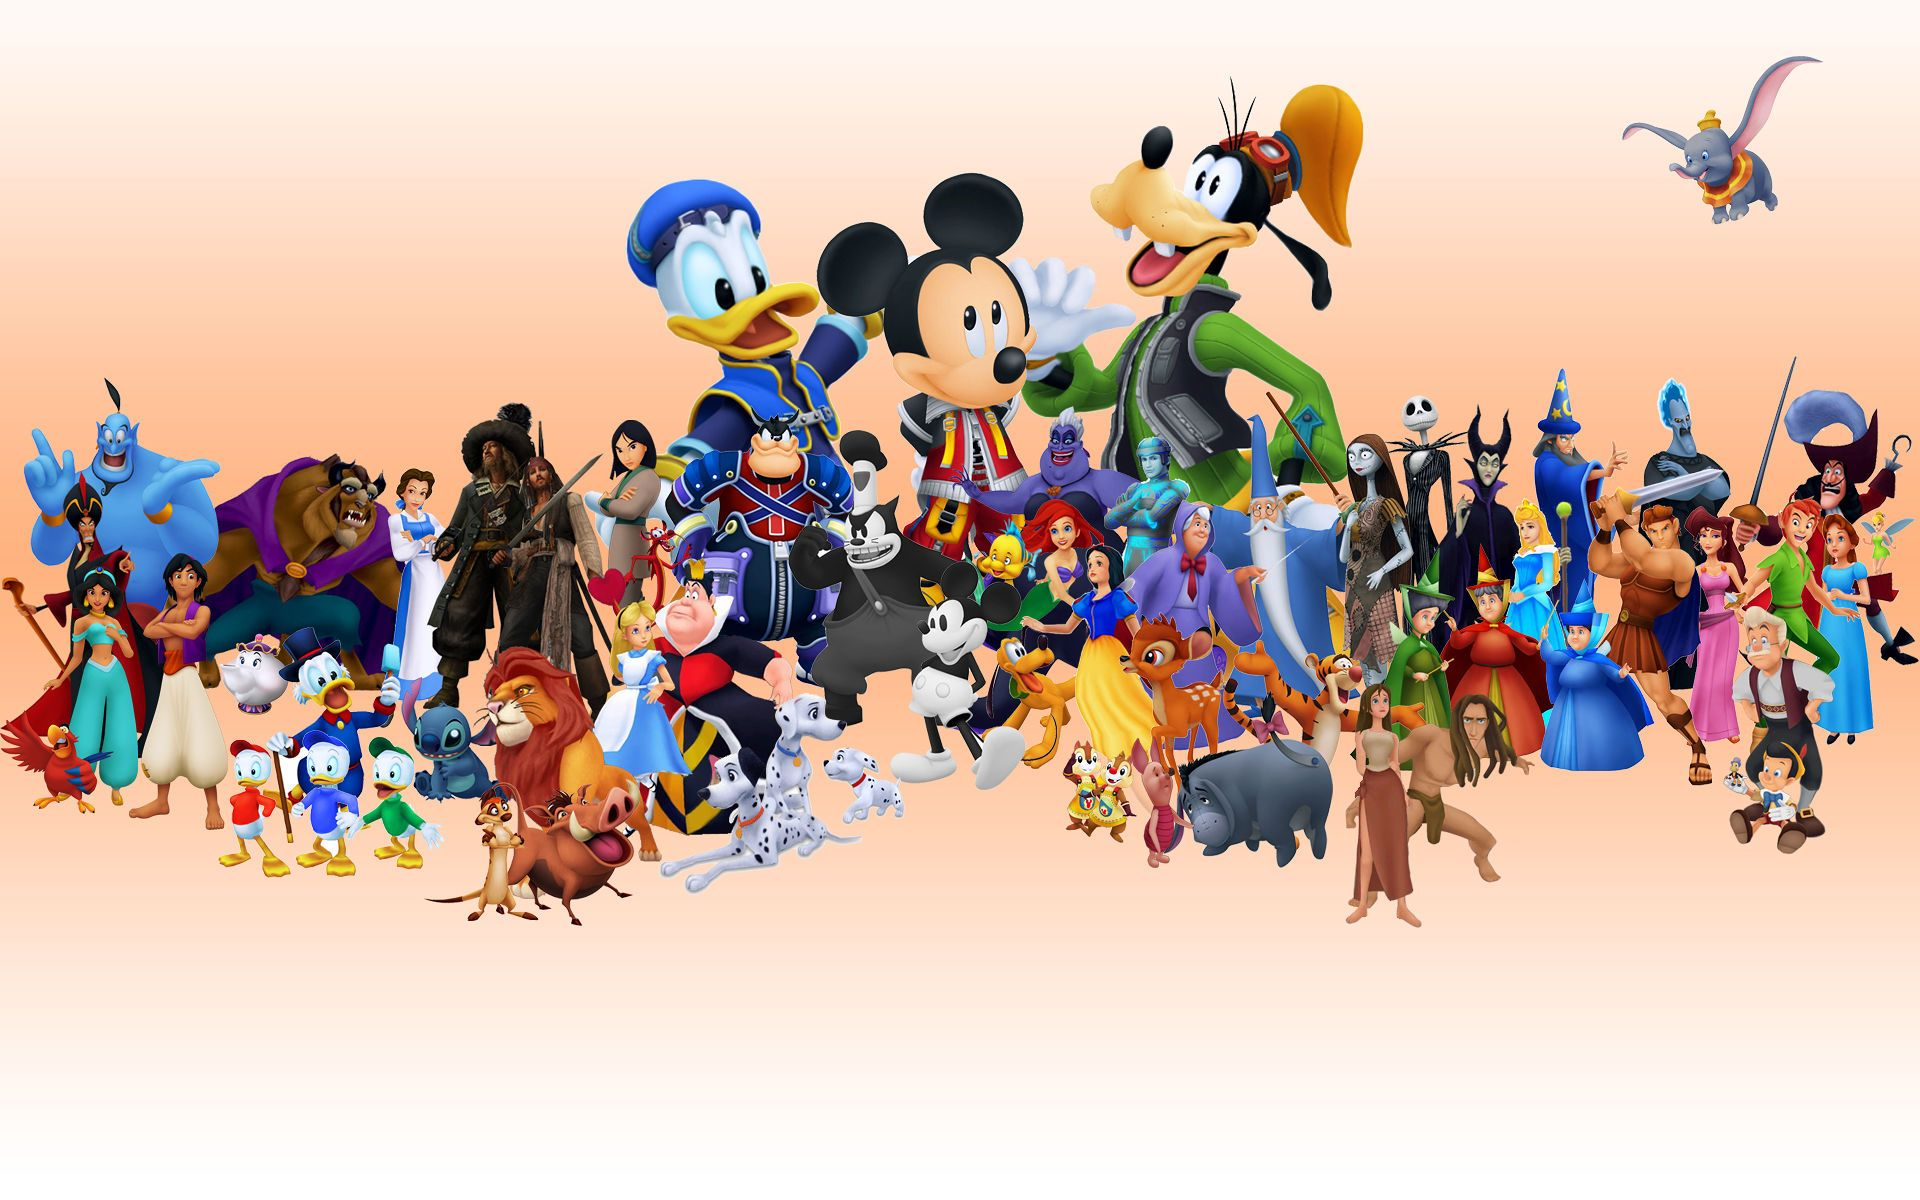 Kingdom Hearts 3: Will These Disliked Disney Worlds & Characters